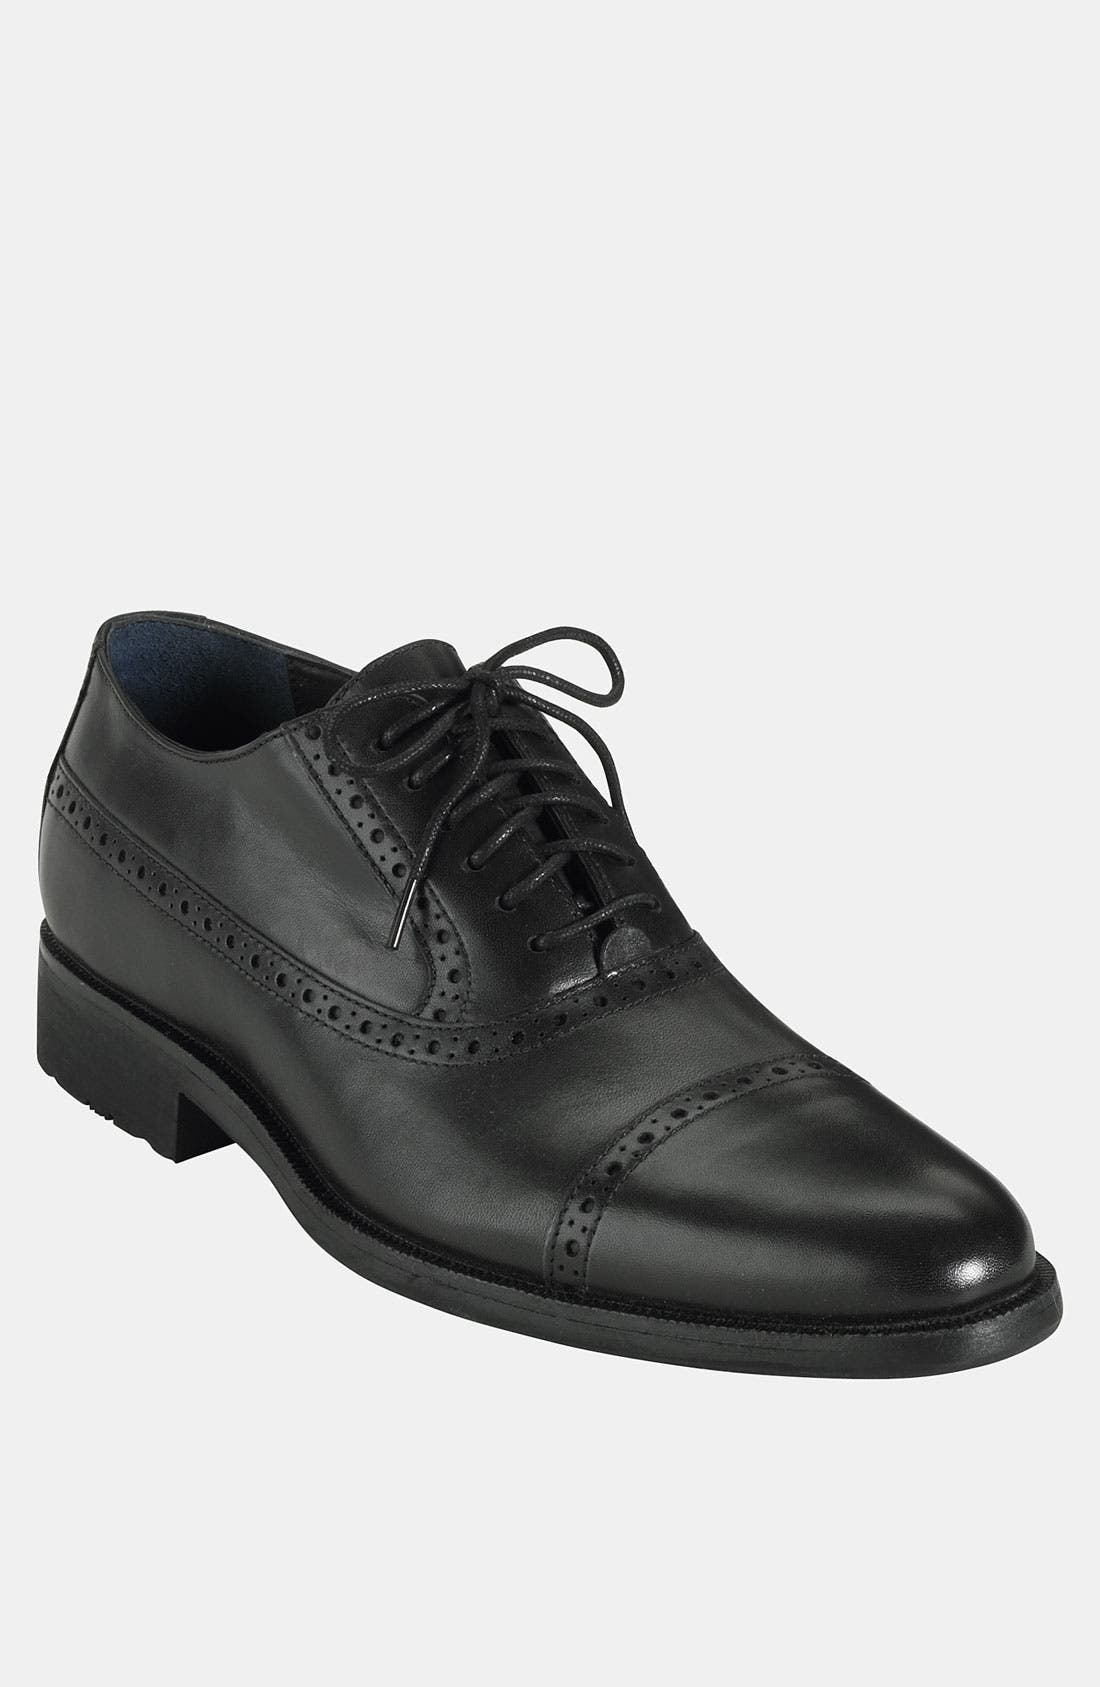 Main Image - Cole Haan 'Air Stanton' Cap Toe Oxford